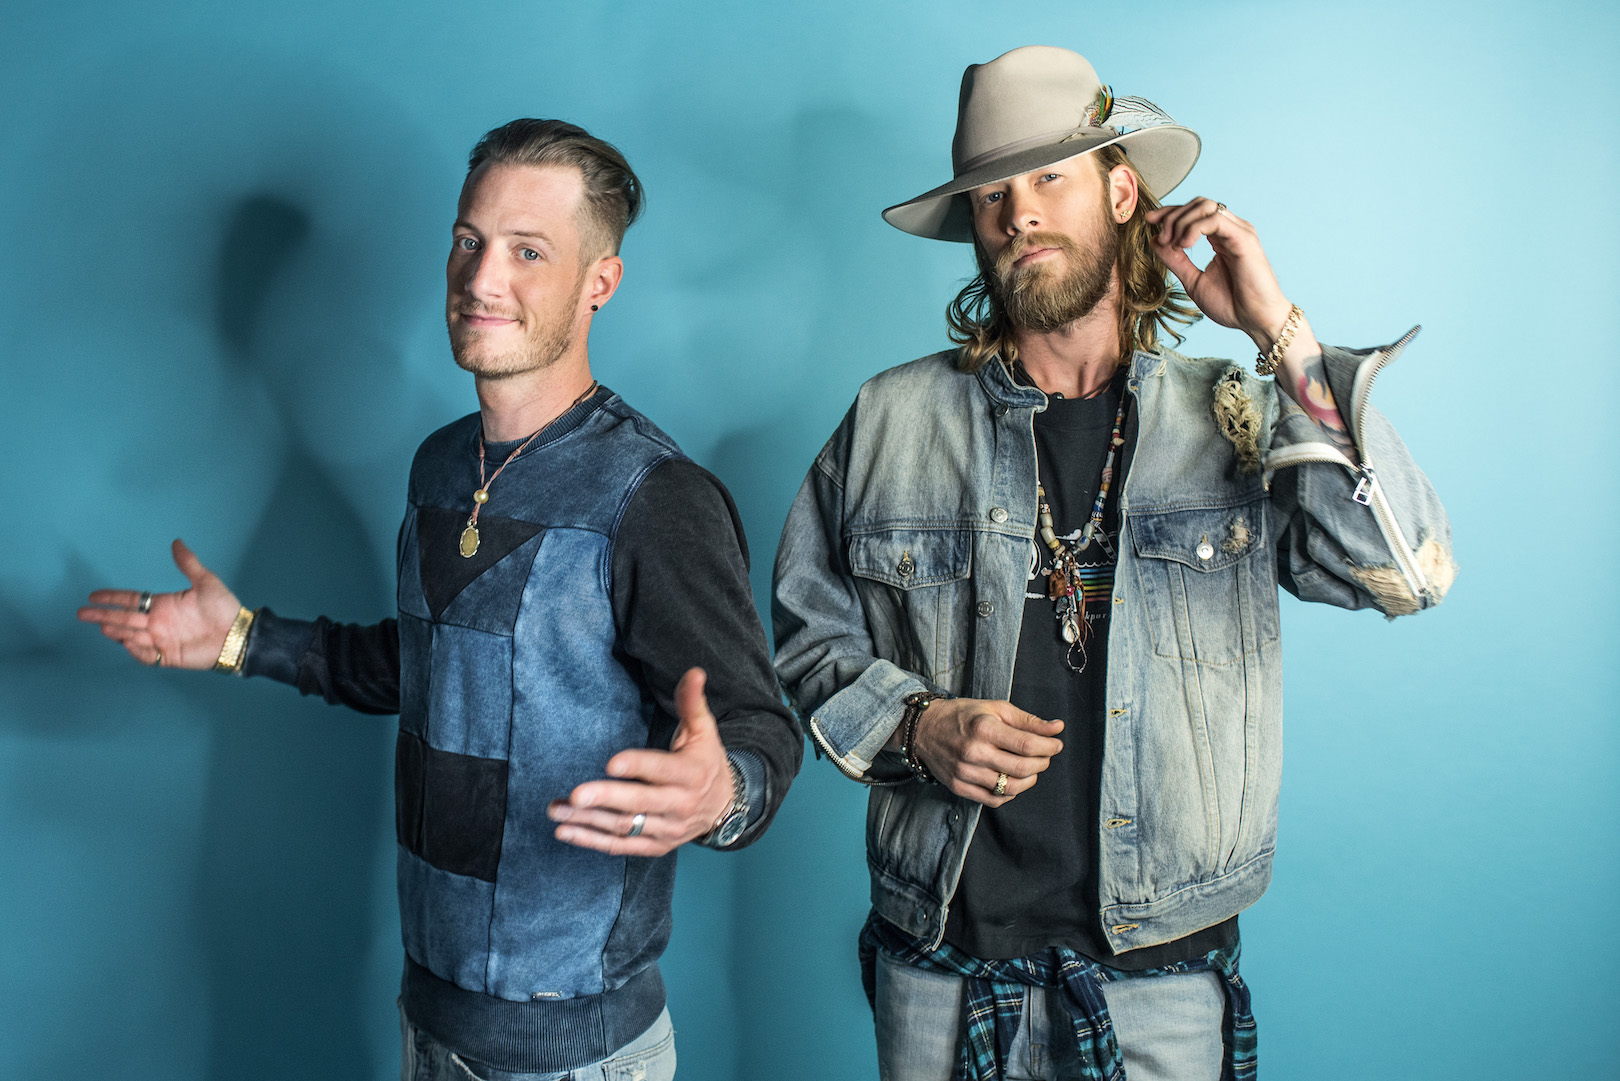 Tyler Hubbard, left, and Brian Kelley of Florida Georgia Line. (Photo by Delaney Royer)